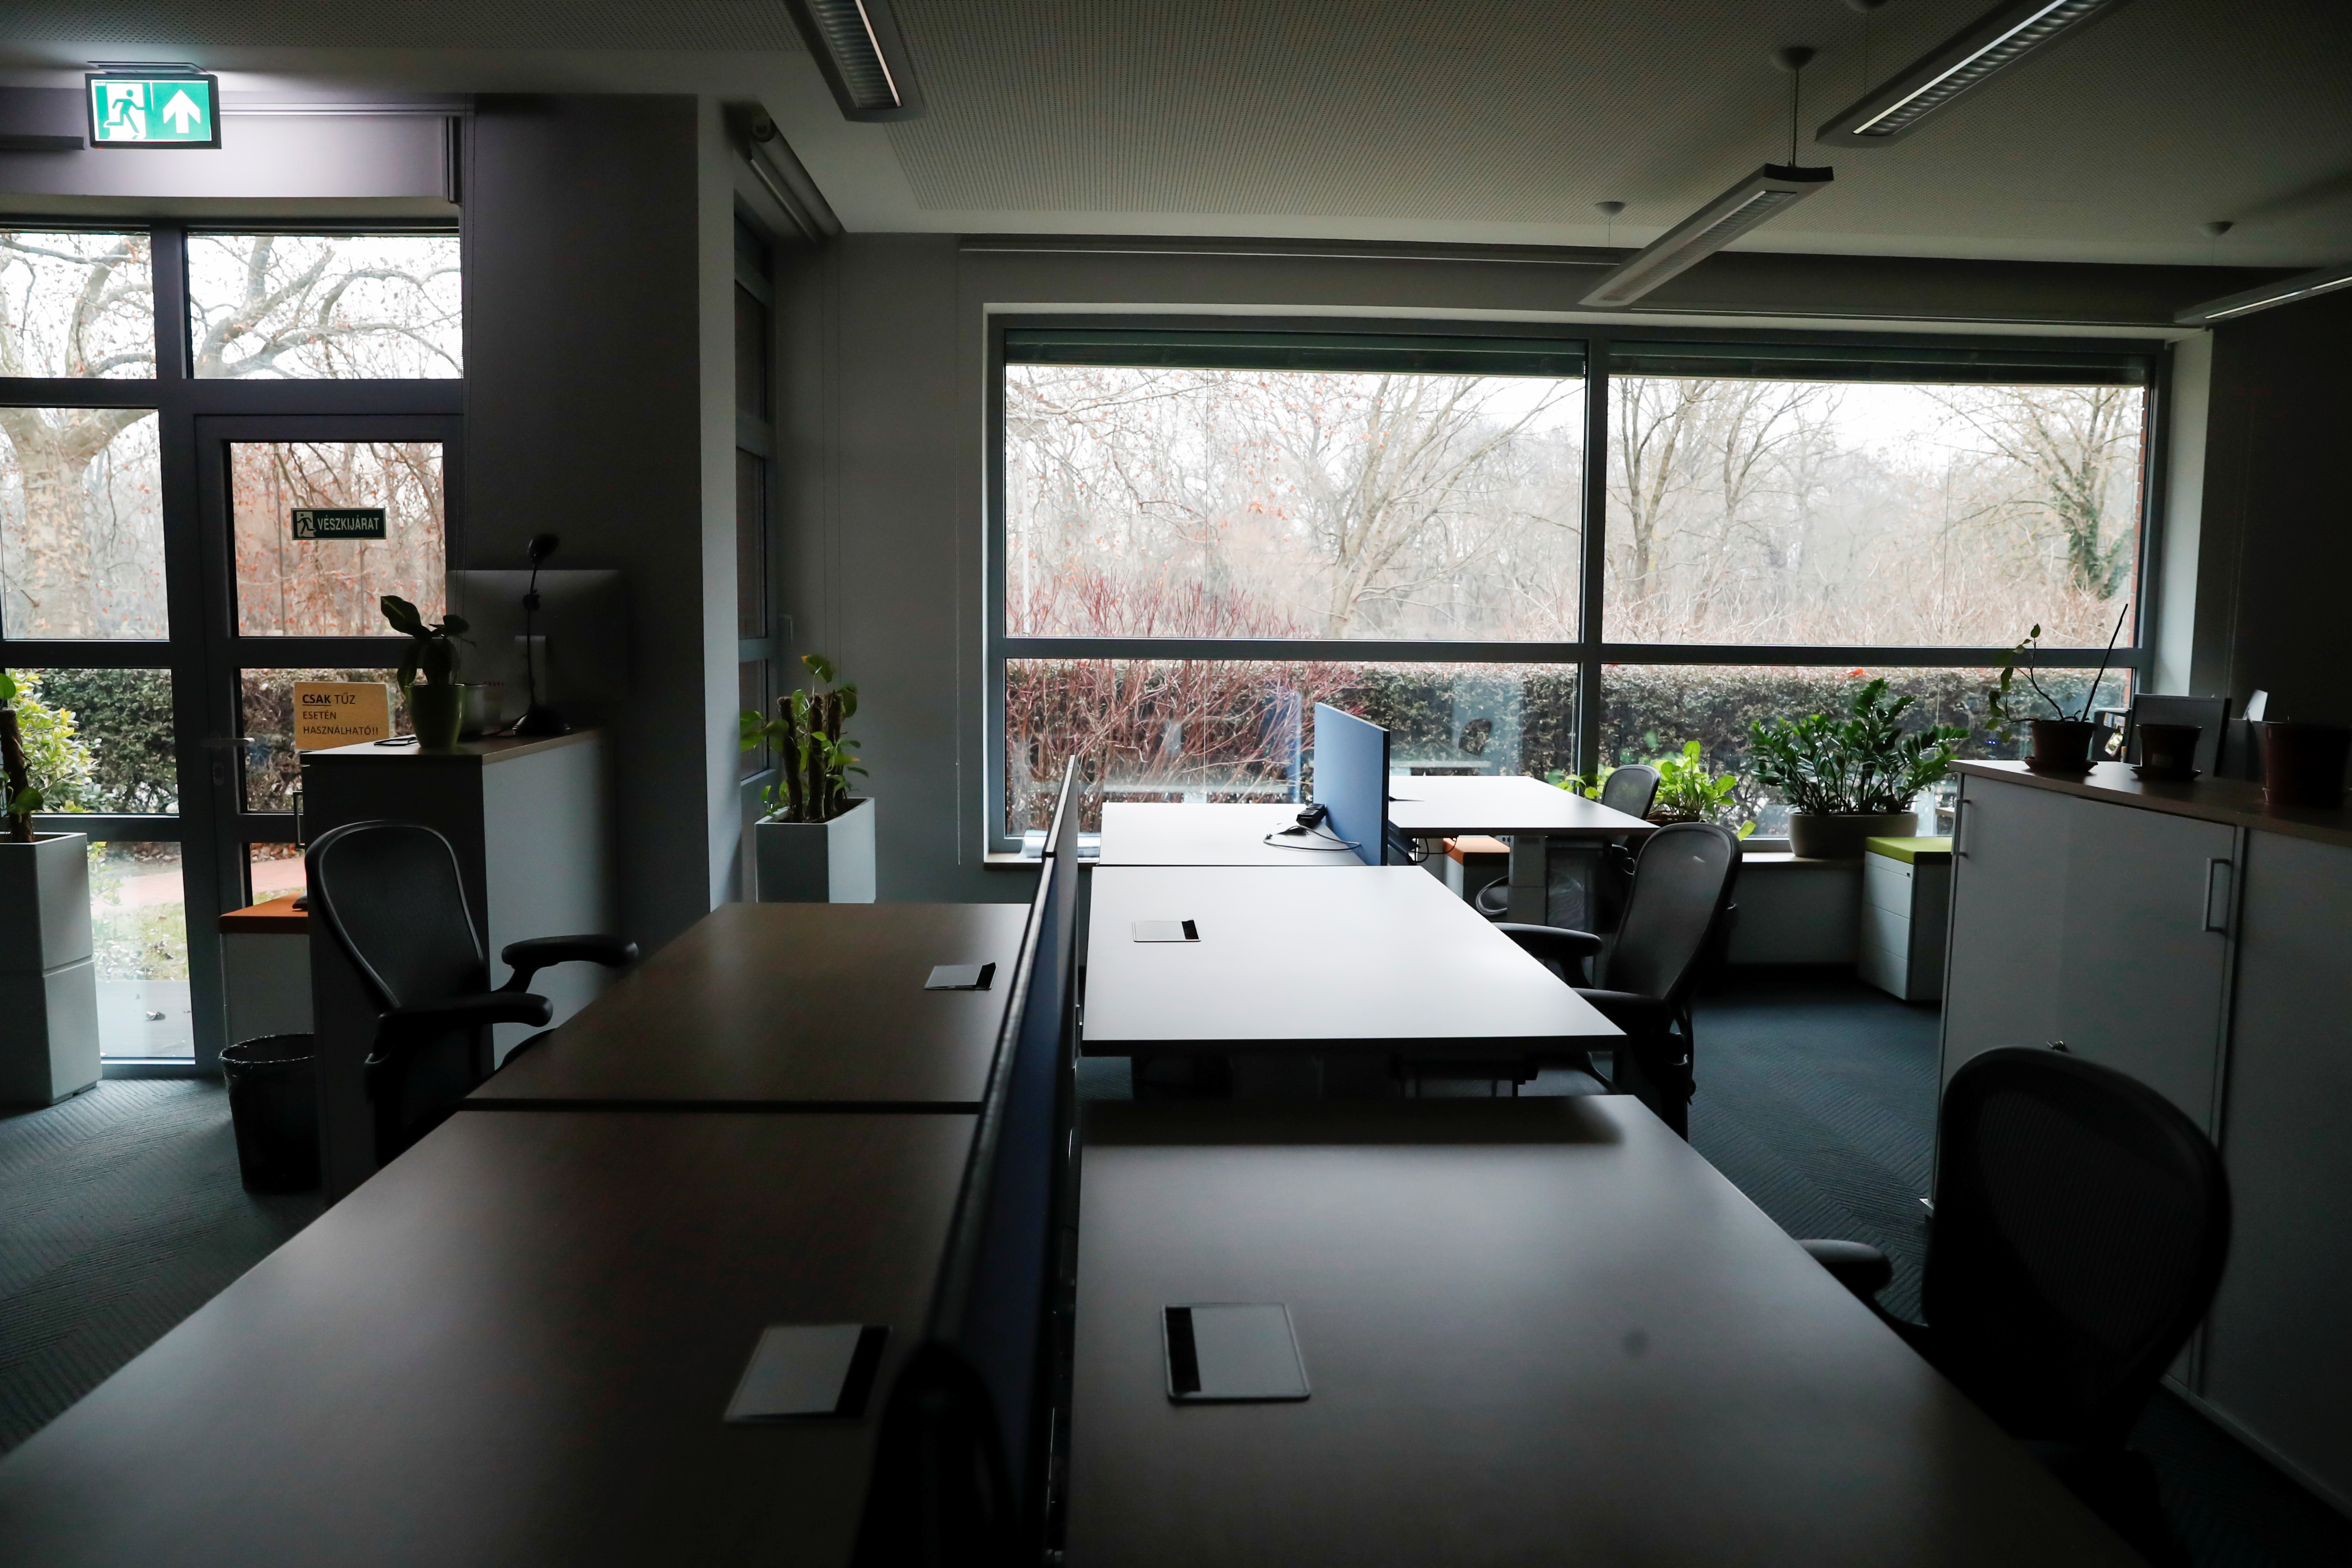 An empty office is pictured at Graphisoft HQ during the coronavirus disease (COVID-19) pandemic in Budapest, Hungary, January 28, 2021. Picture taken January 28, 2021. REUTERS/Bernadett Szabo - RC2PPL97OPNL